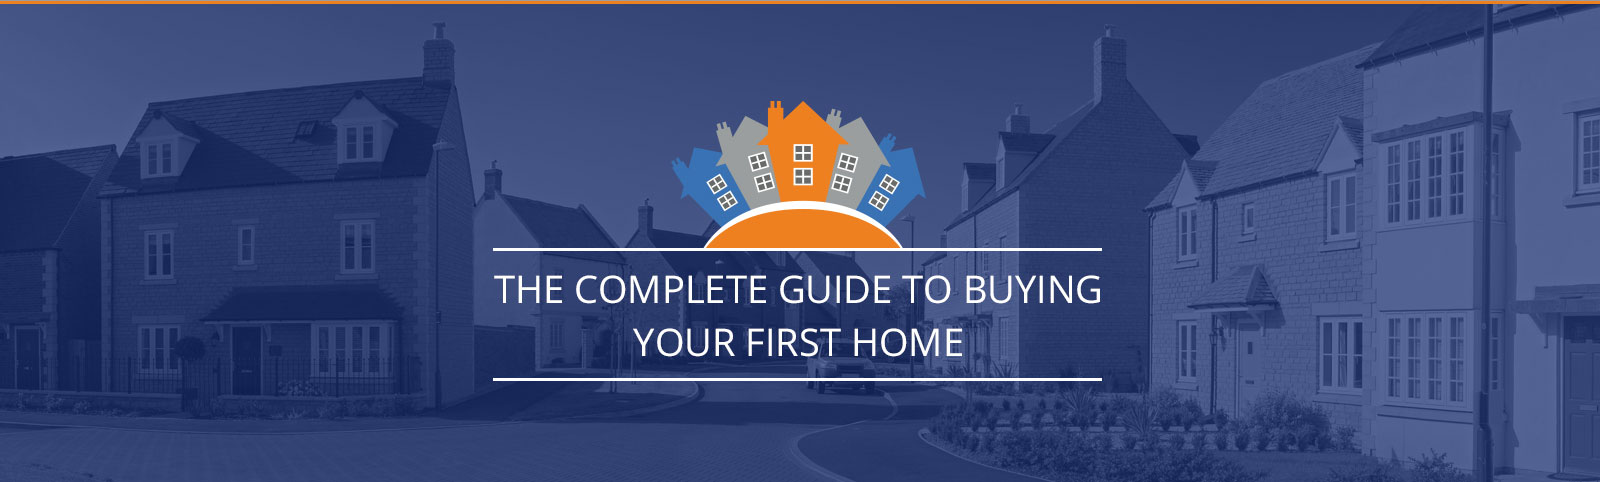 The Complete Guide To Ing Your First Home S1homes